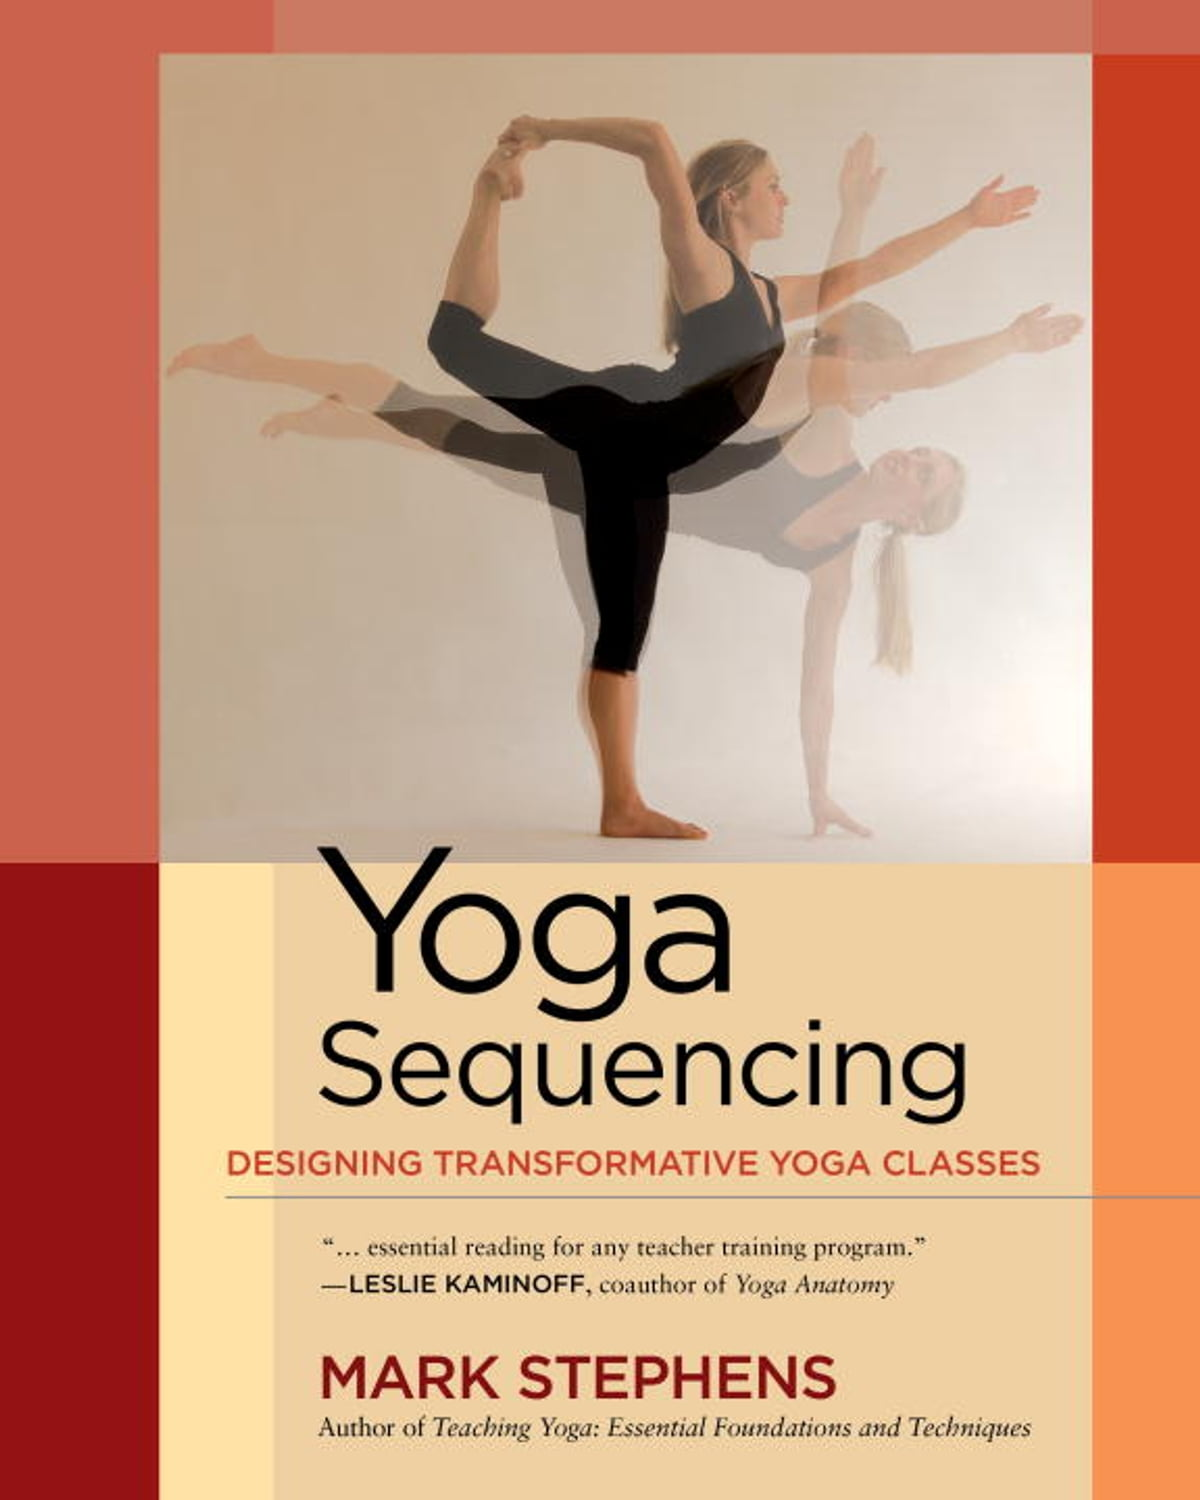 Mark Stephens Yoga Sequencing Book Cover